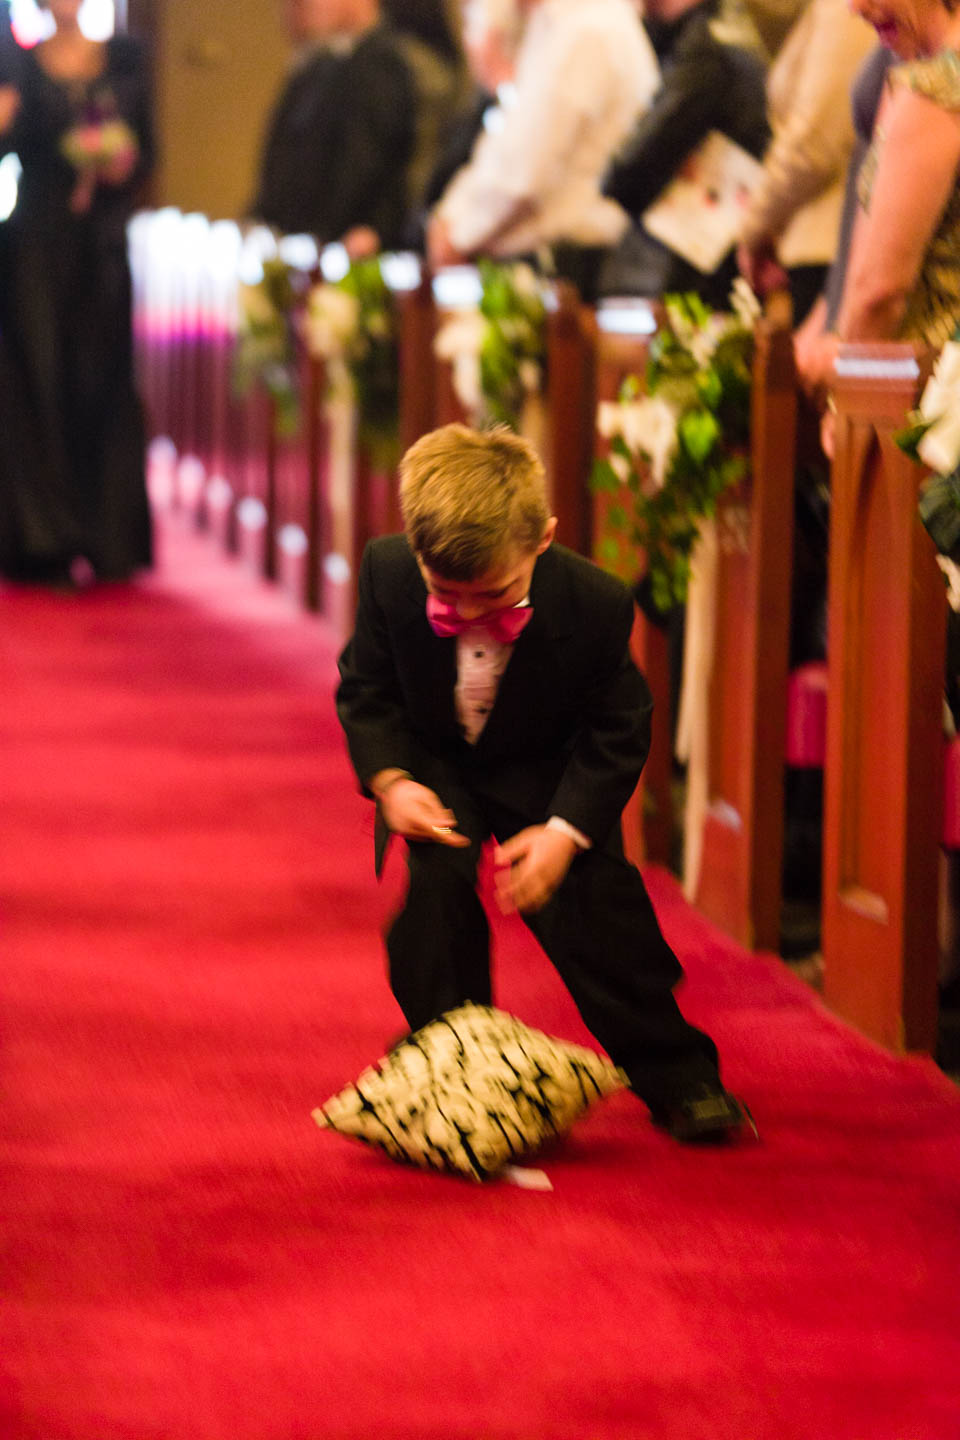 Ring bearer drops the rings and pillow